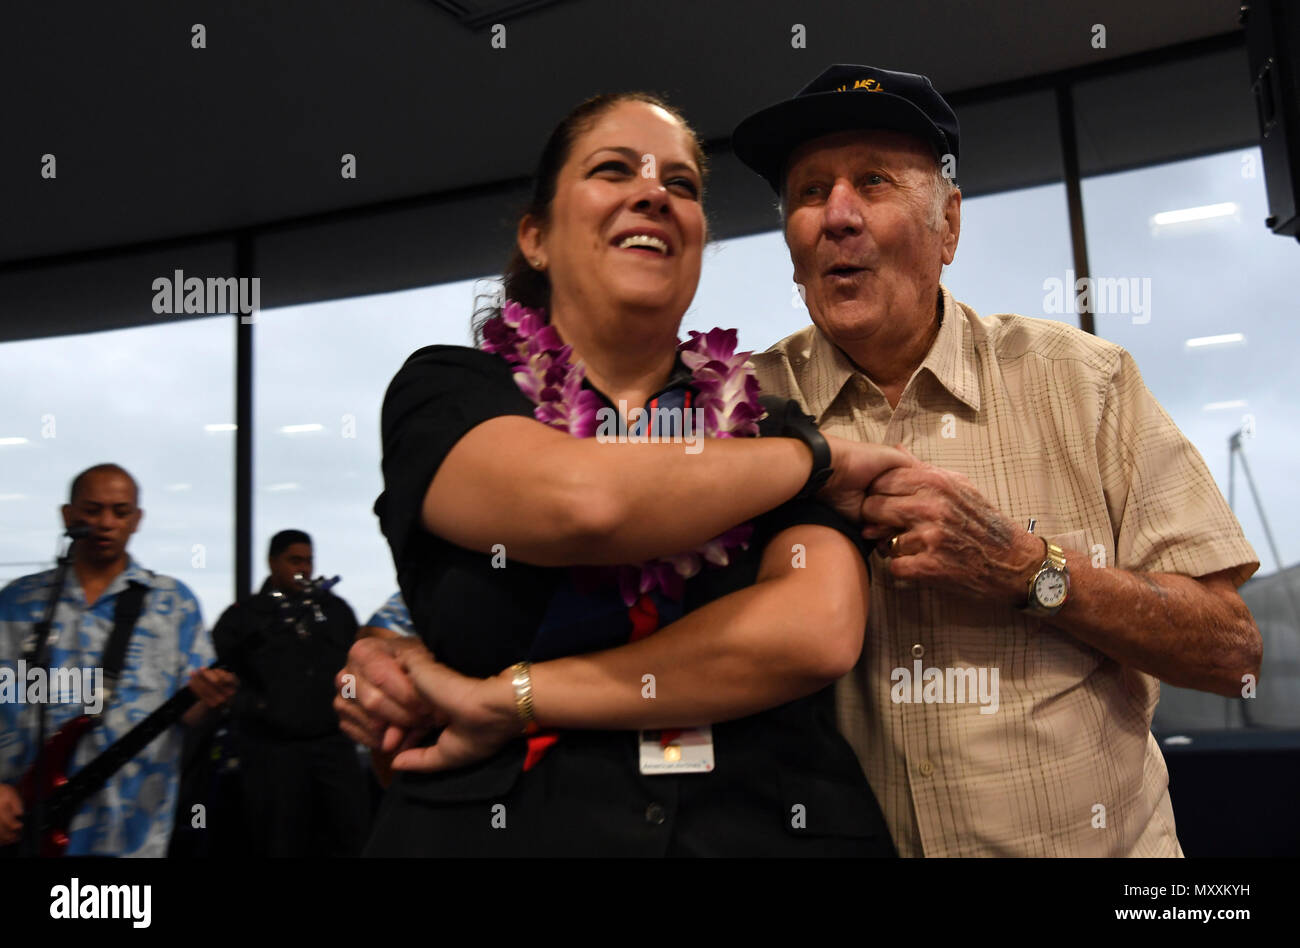 161209 N GI544 185 HONOLULU Dec 9 2016 American Airline Flight Attendant Lisa Popovitch Of Palm Desert California Left Dances With World War II